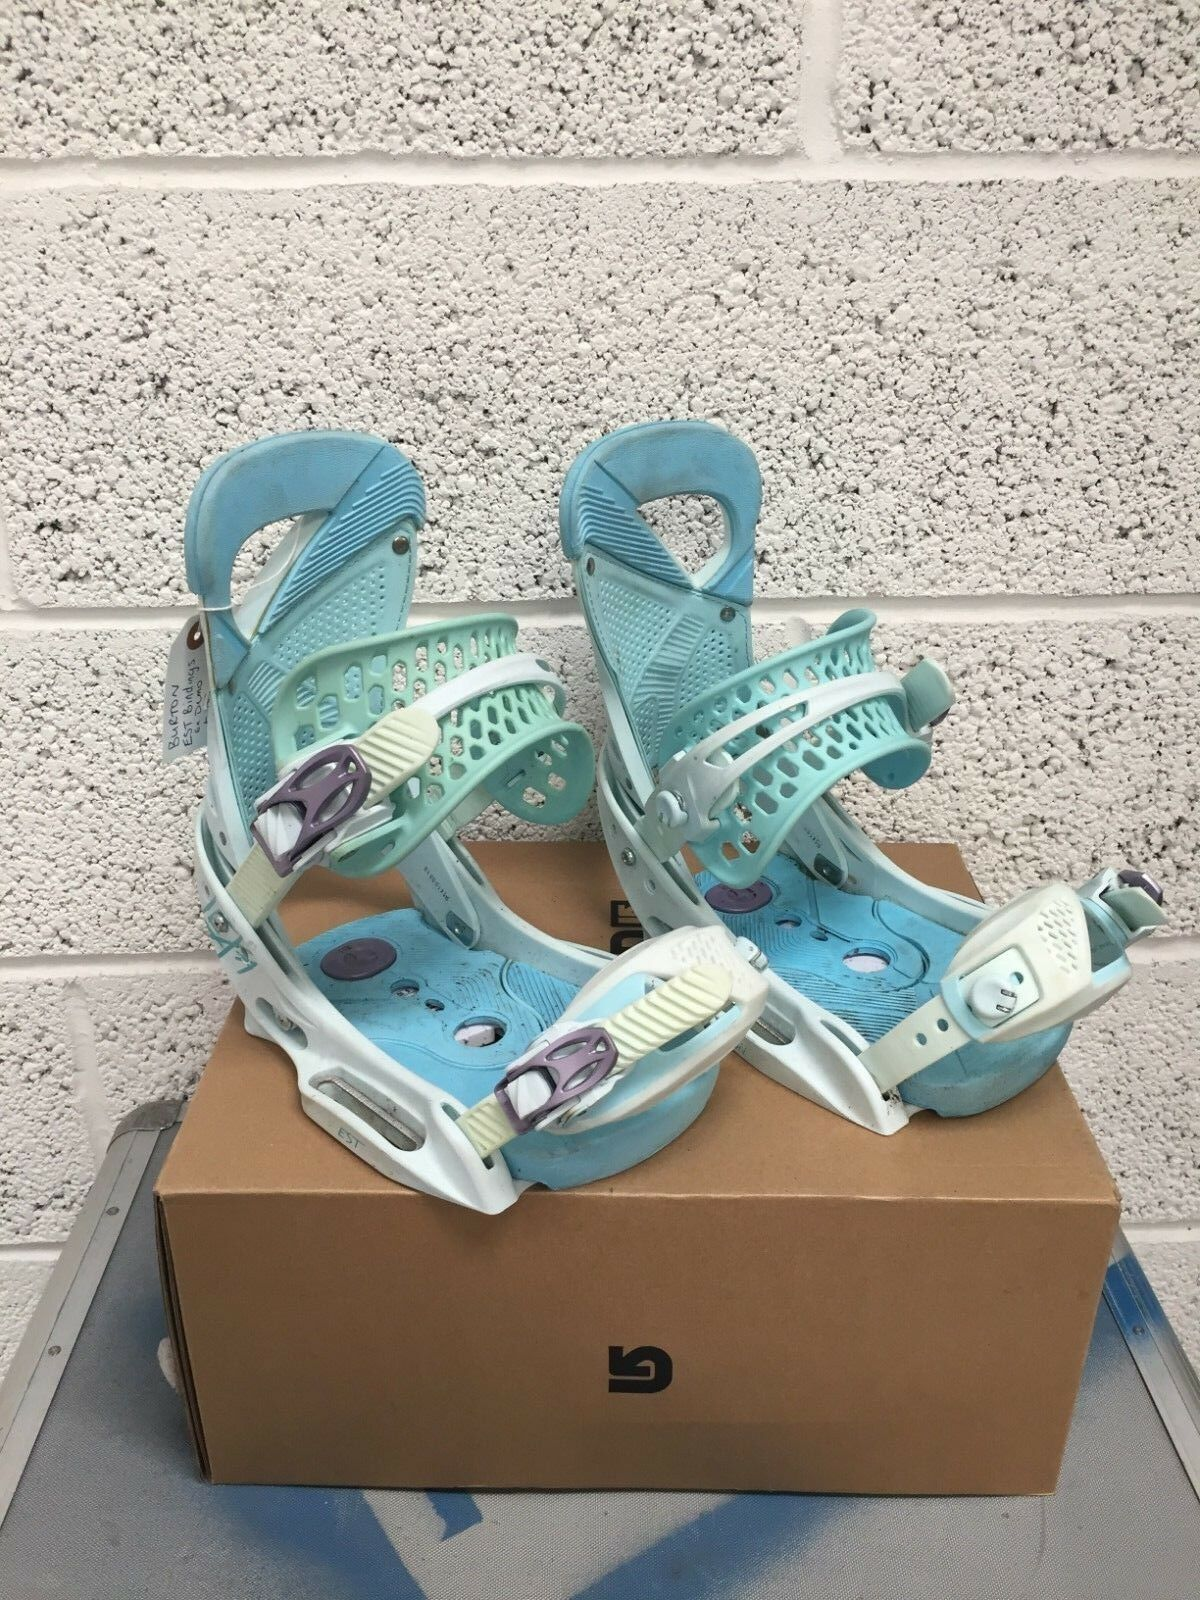 EX DEMO BURTON WOMENS SNOWBOARD BINDINGS LEXA EST blueEBIRD LARGE